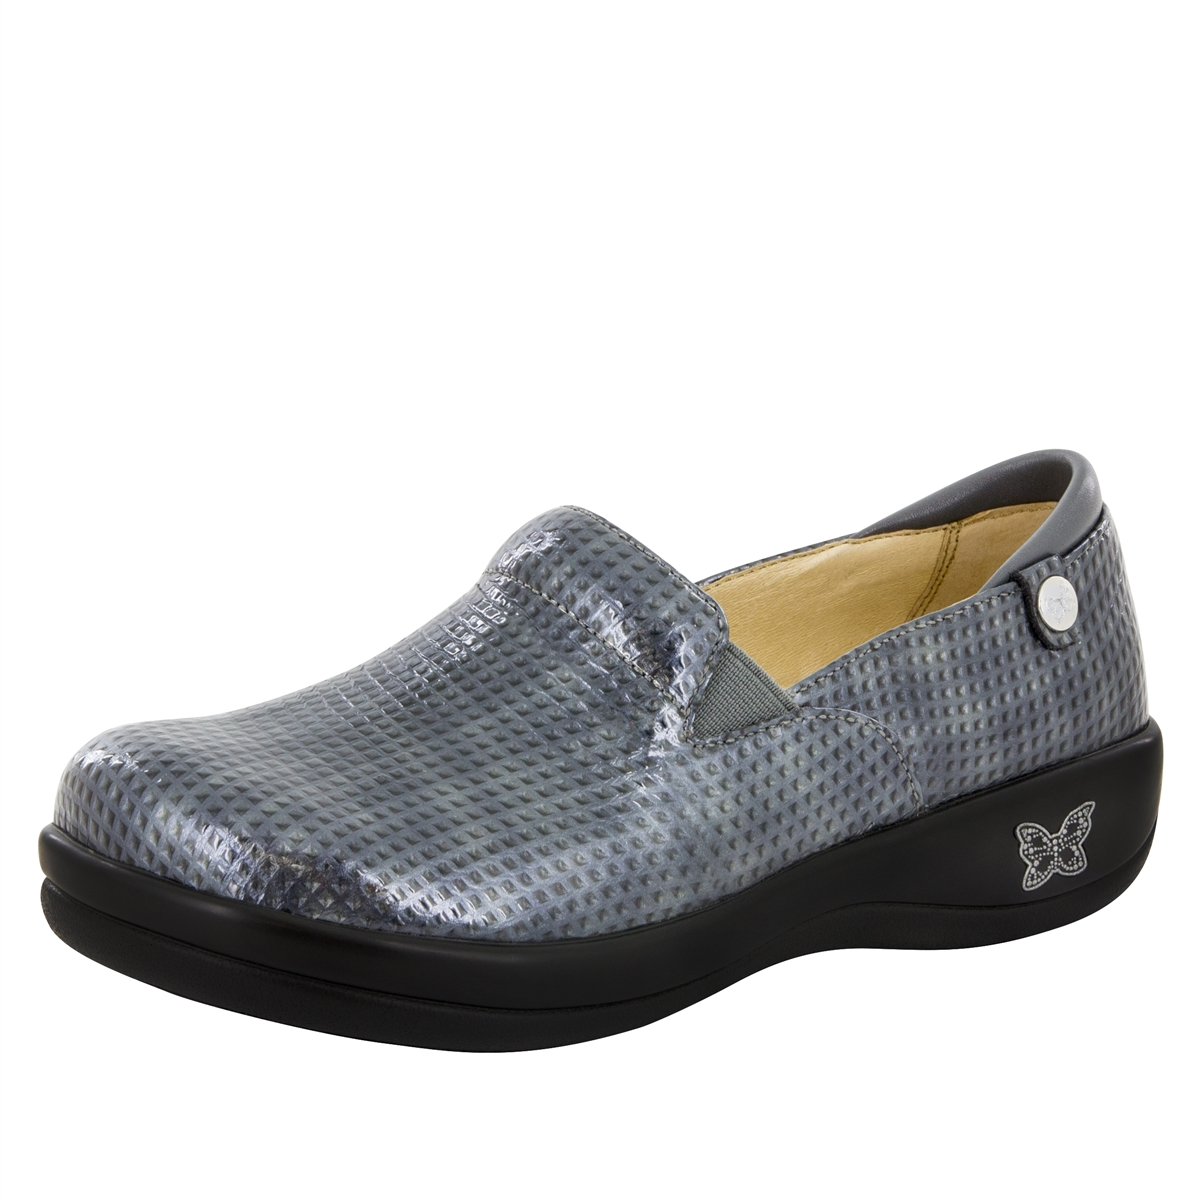 Clearance Alegria Keli Pro Chrome Cube Nursing Shoes